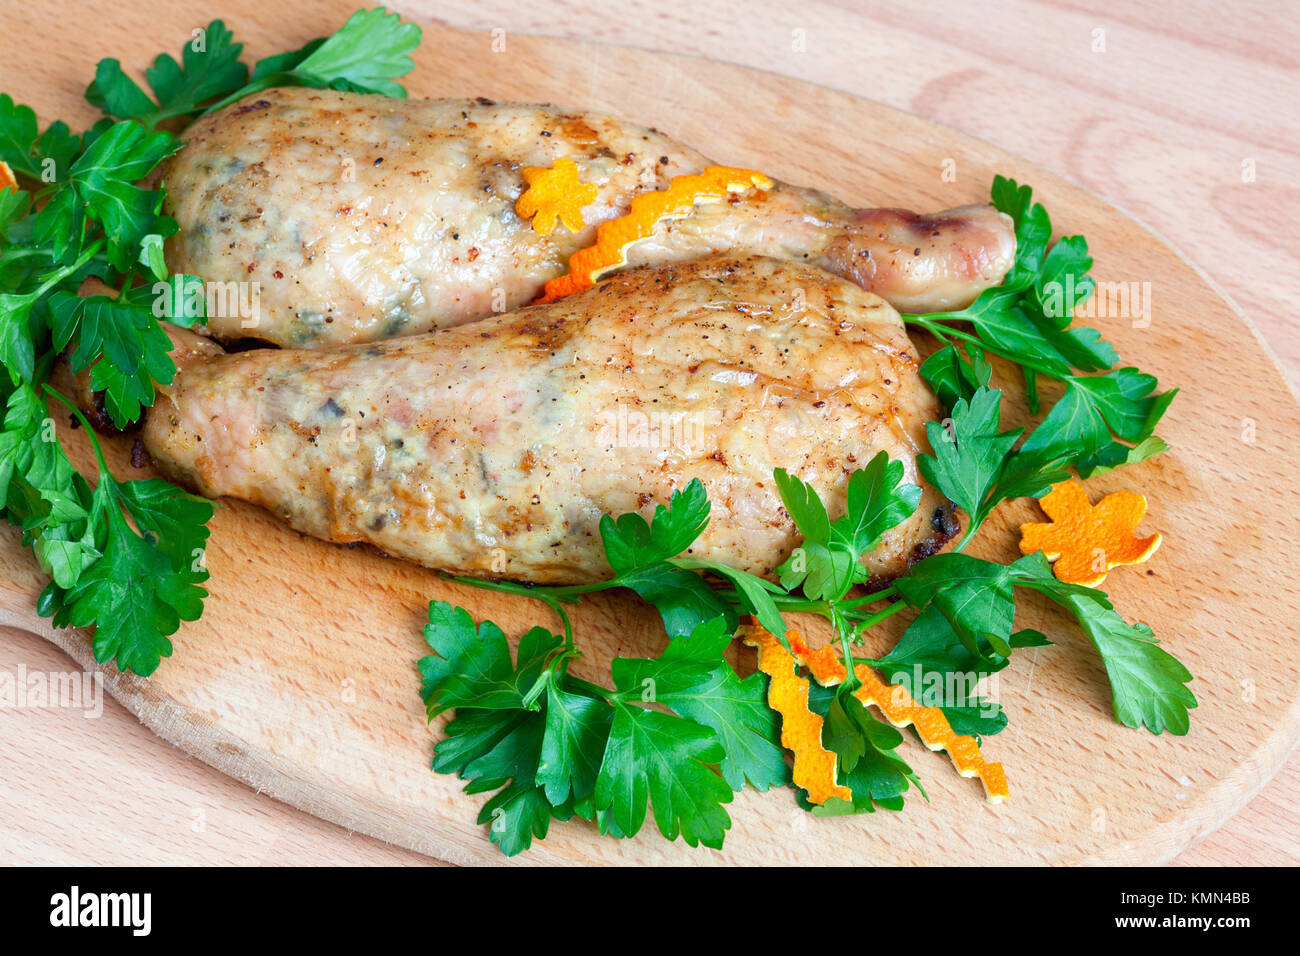 Fried chicken legs with parsley on the board - Stock Image